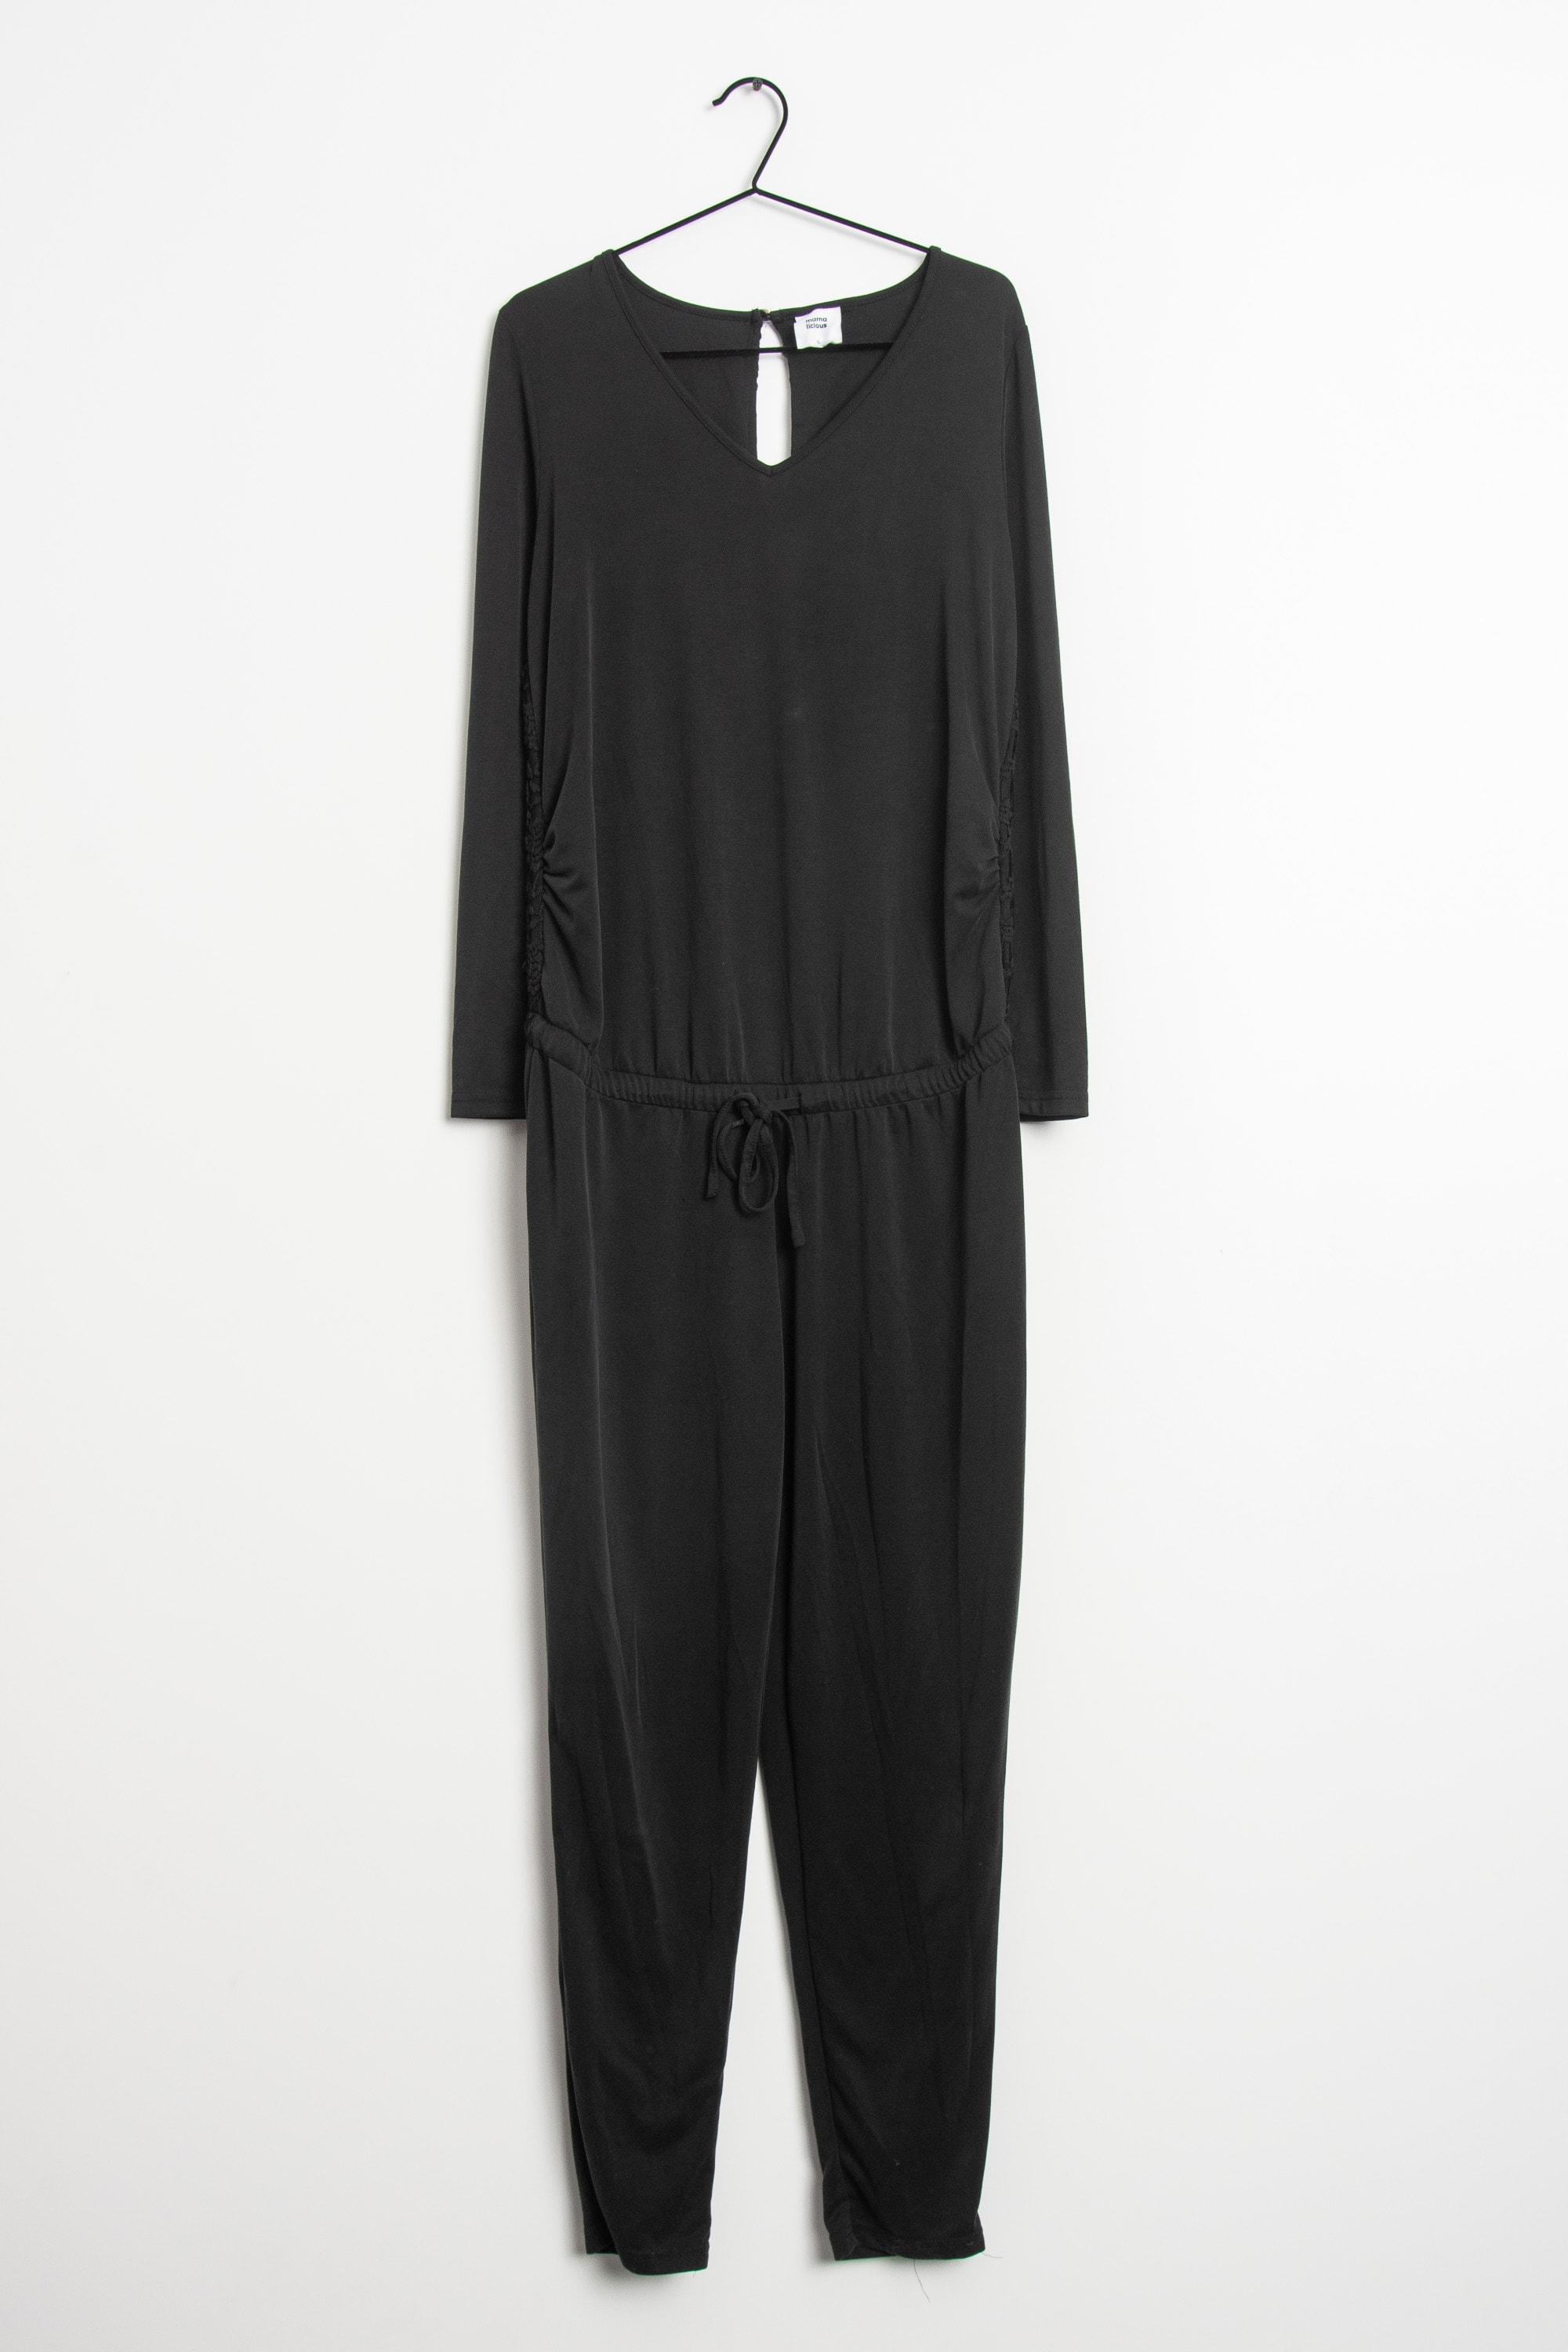 MAMALICIOUS Jumpsuit / Overall Schwarz Gr.L